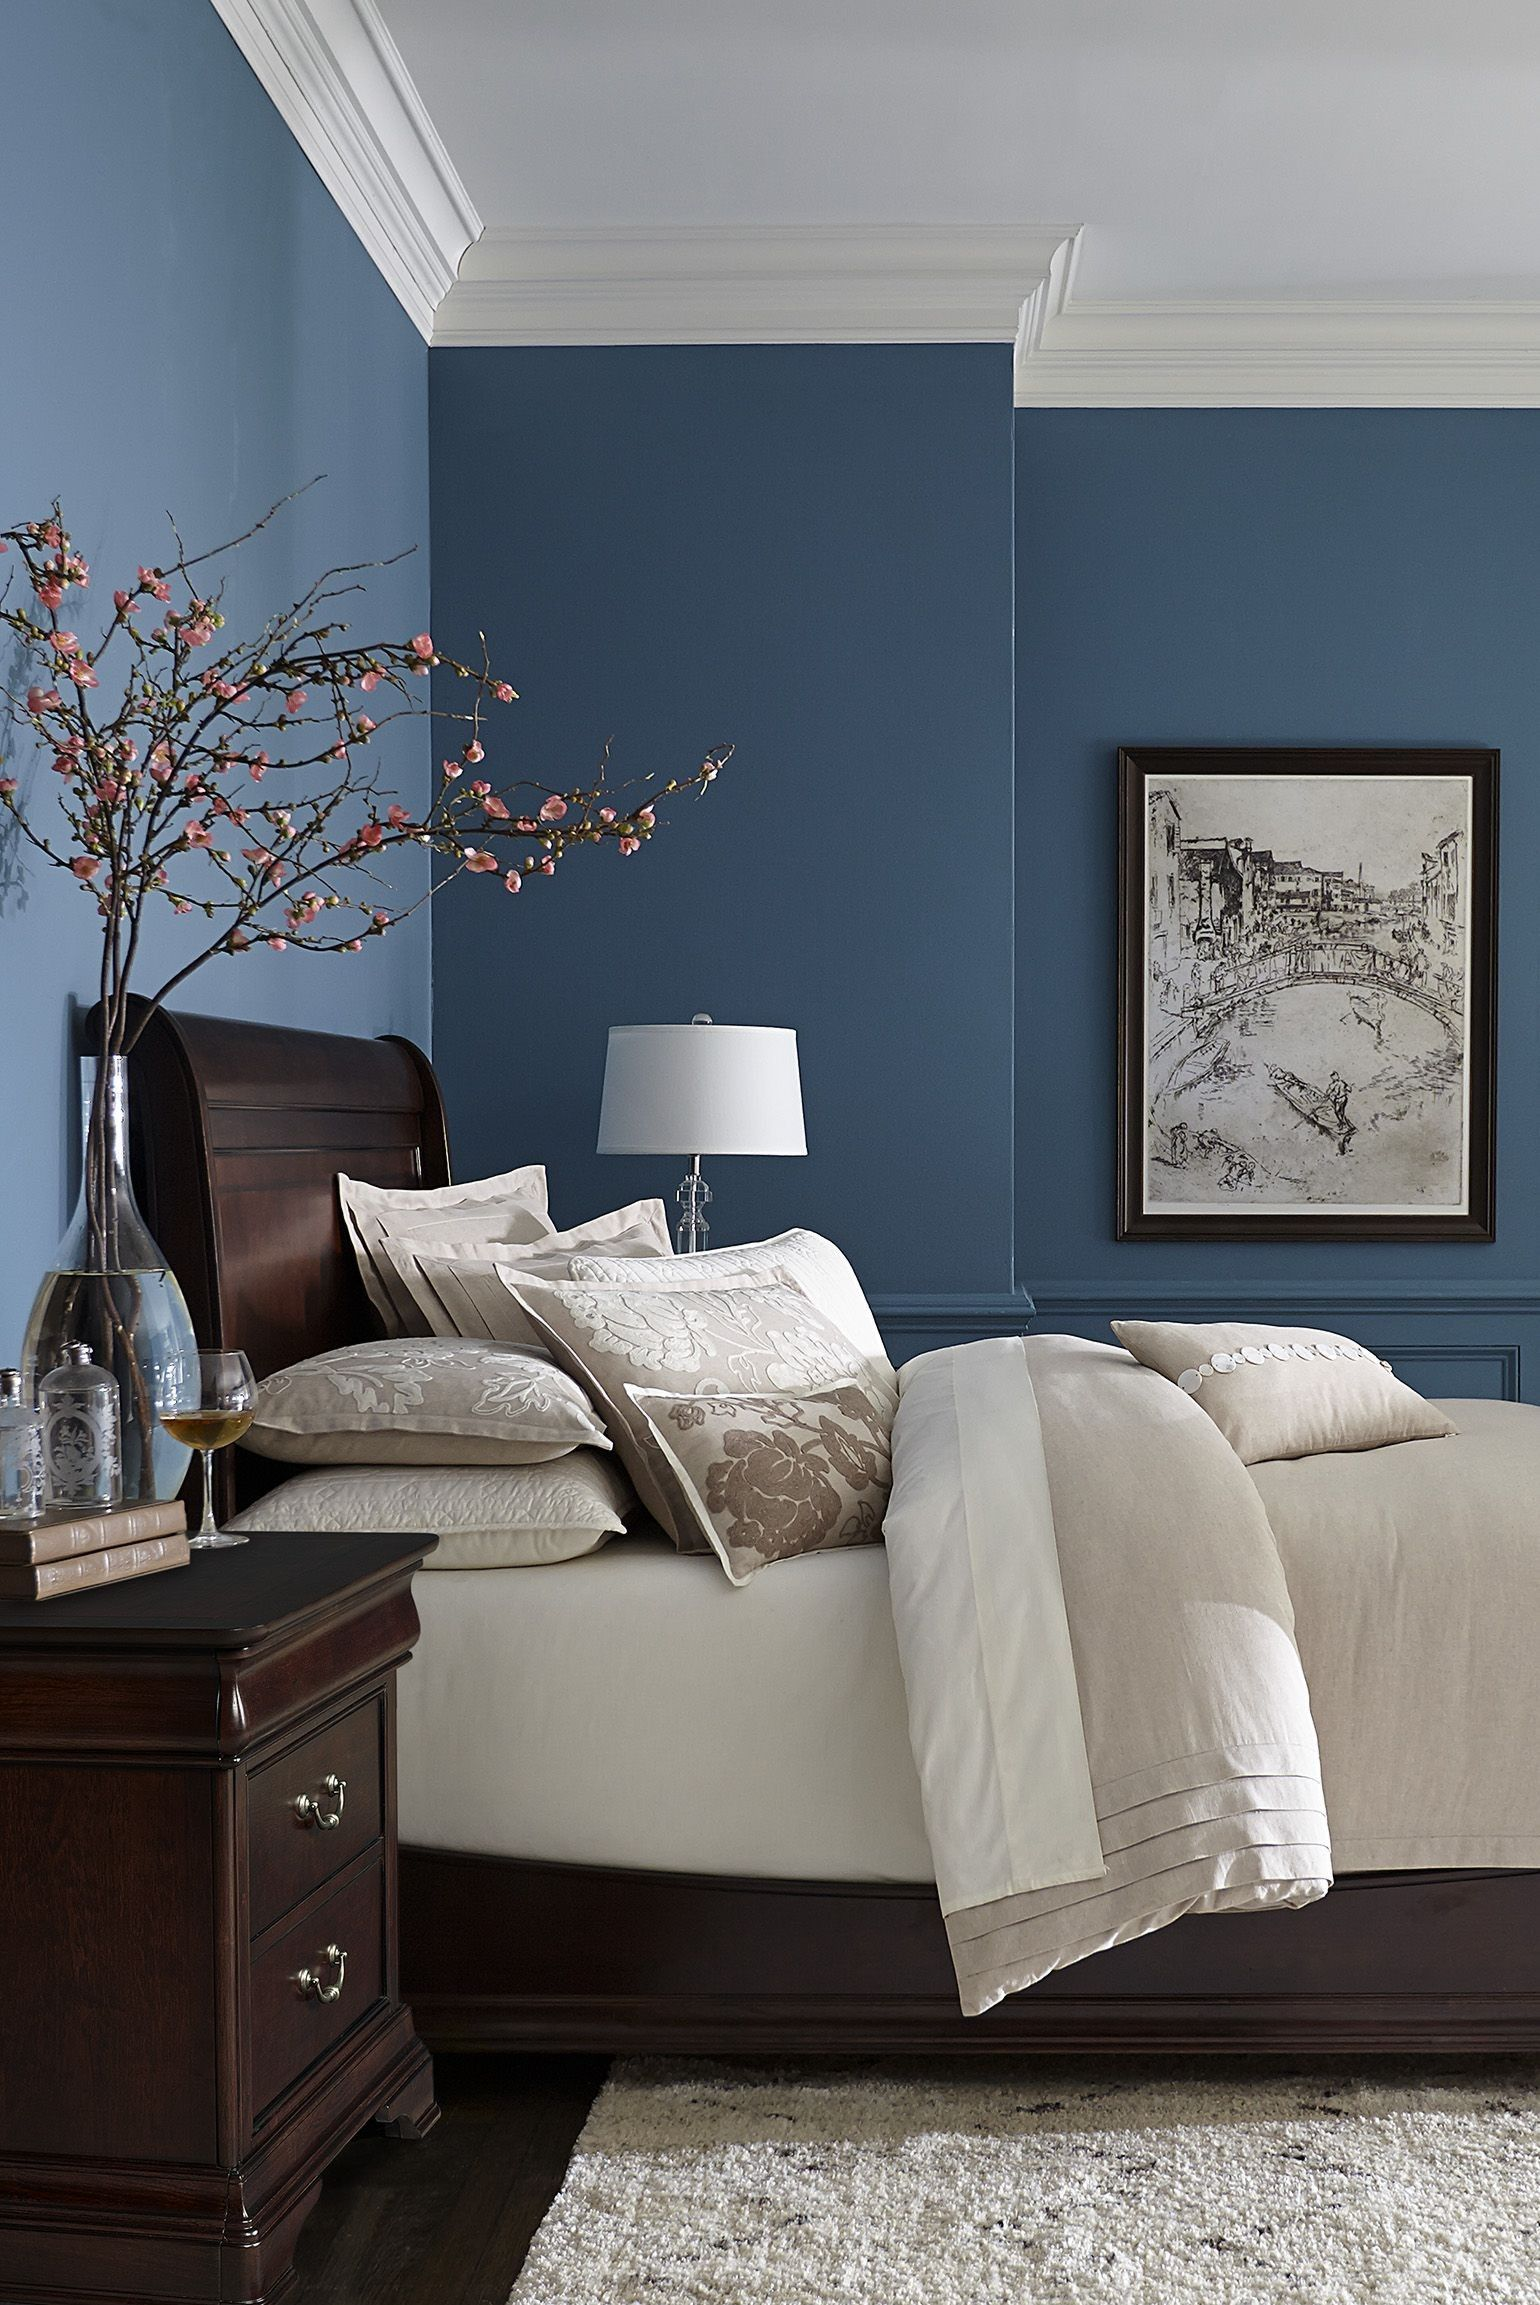 Embellish Your Bedroom With The Right Paint Color Design As Well Enhancing Ideas These Are A Few Of Very Best Colors To Create